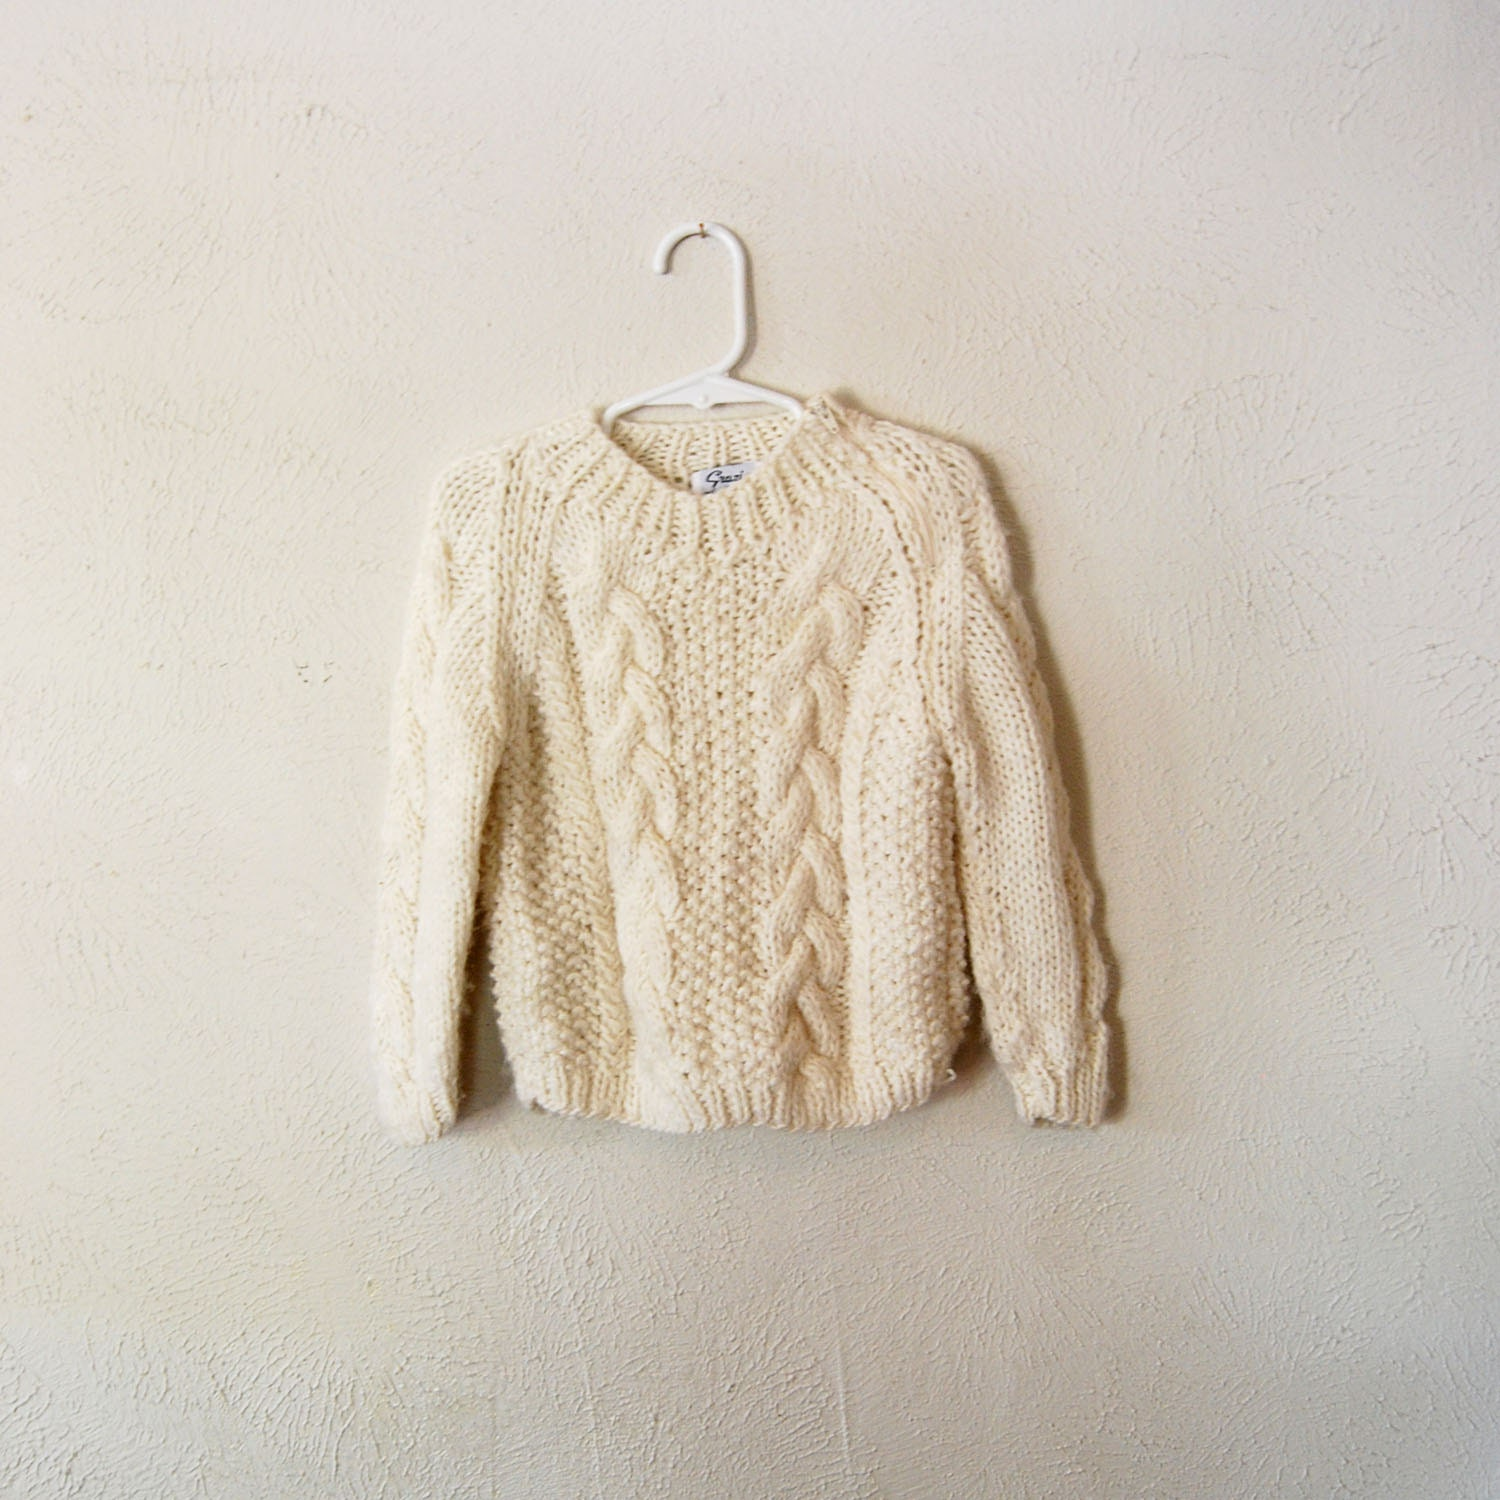 vintage italian hand knit wool sweater for children - olliesvintage